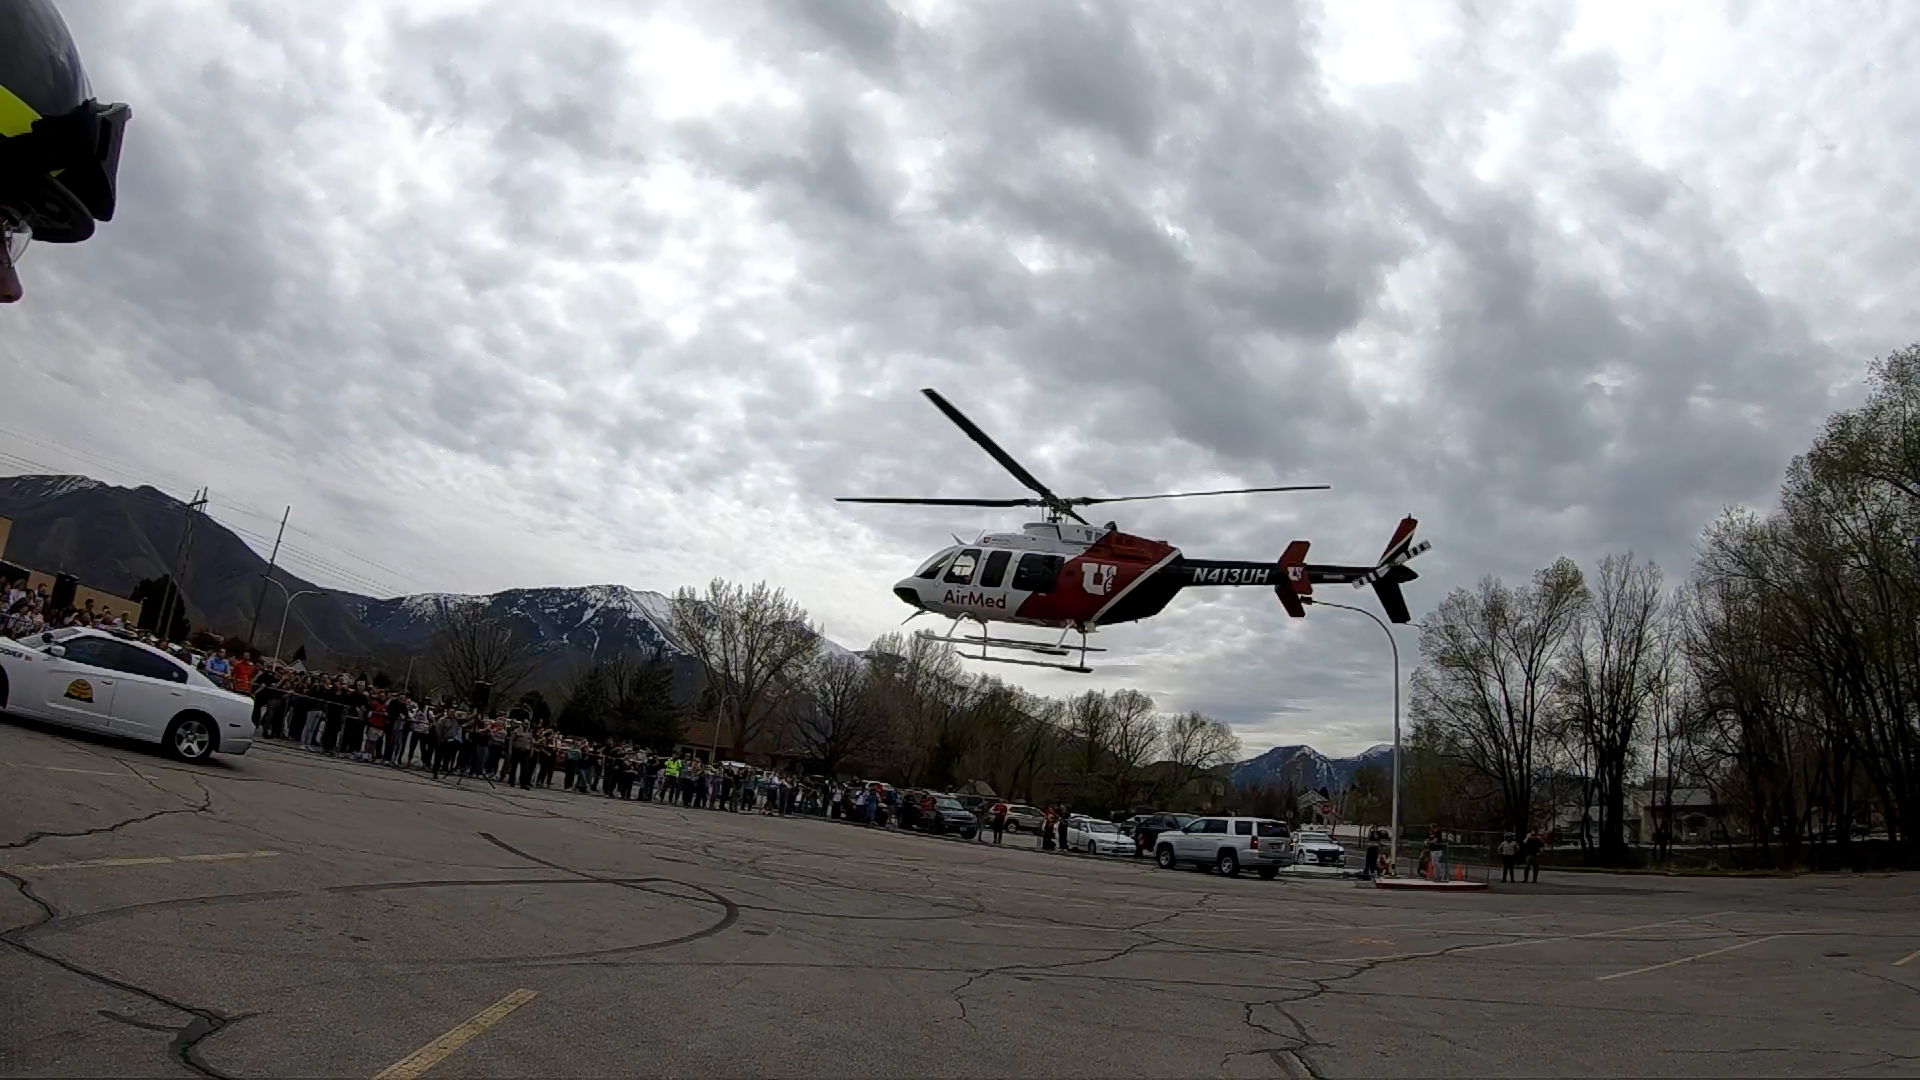 Airmed helo taking off. UHP, Springville PD, SPringville Fire and Rescue, Utah County Sheriff's Office and Lifeflight teamed up to conduct a mock crash at Springville High School on April 10th.